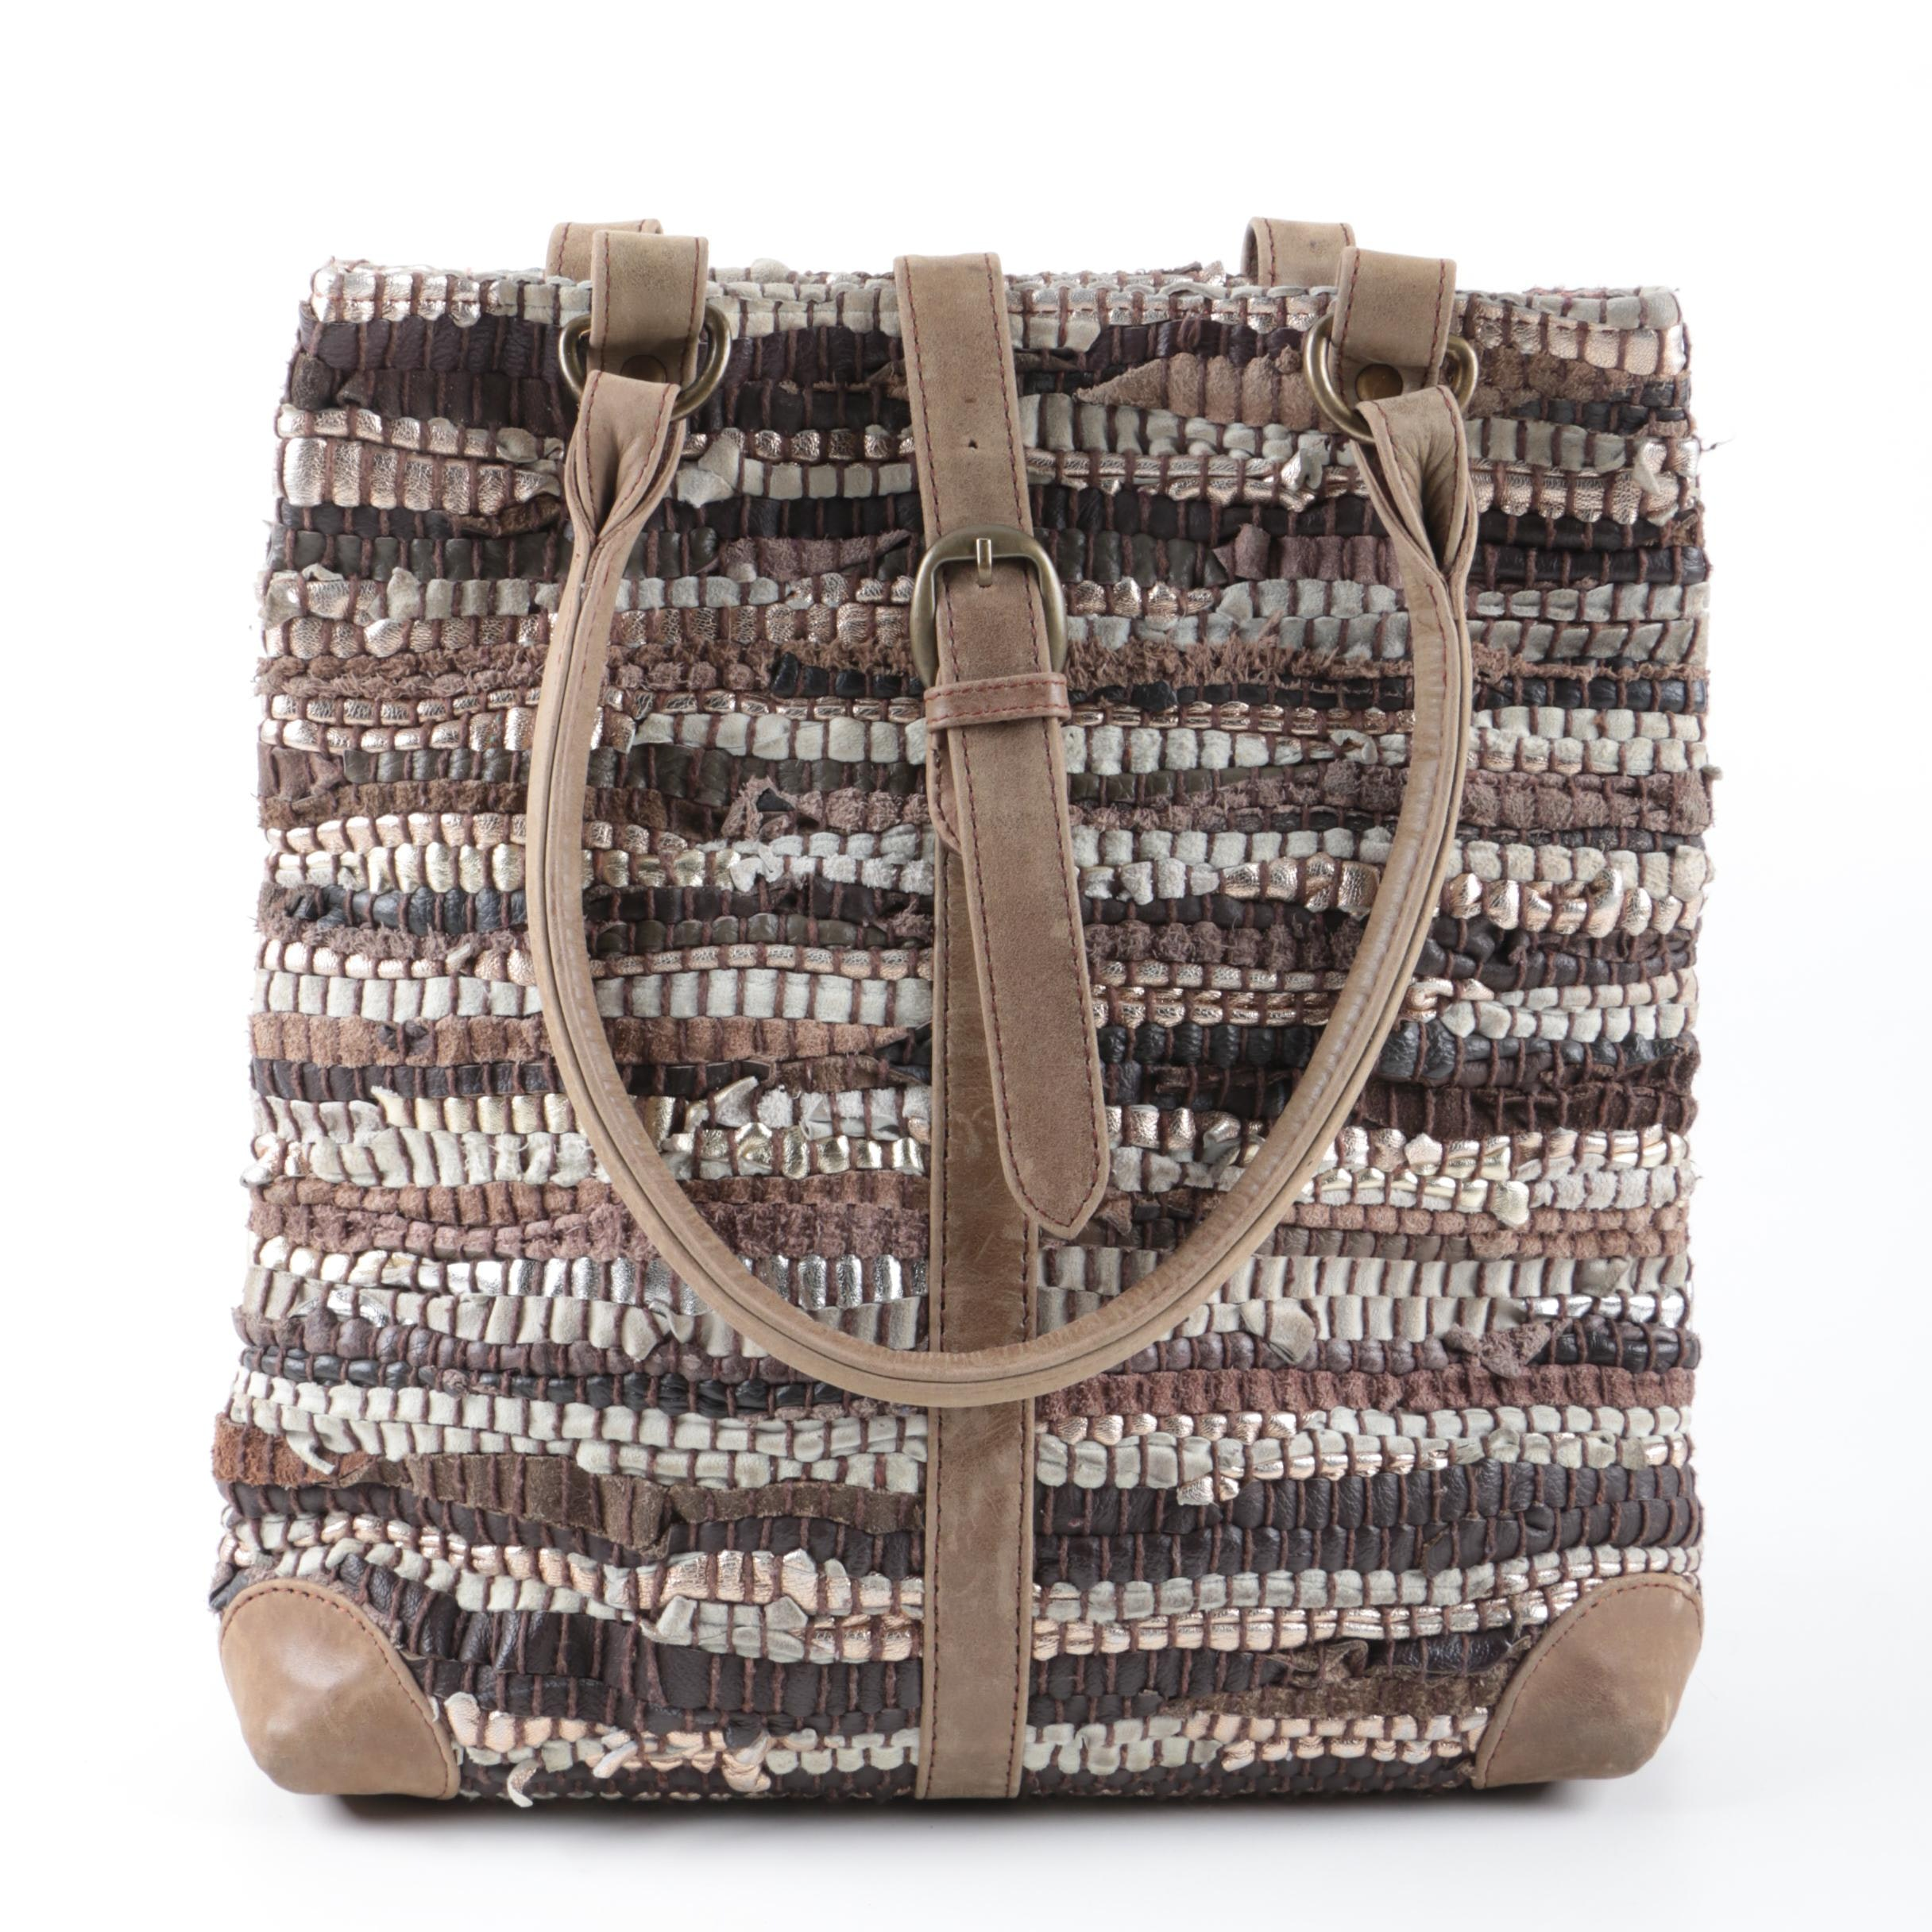 Woven Leather and Suede Handbag in Neutral